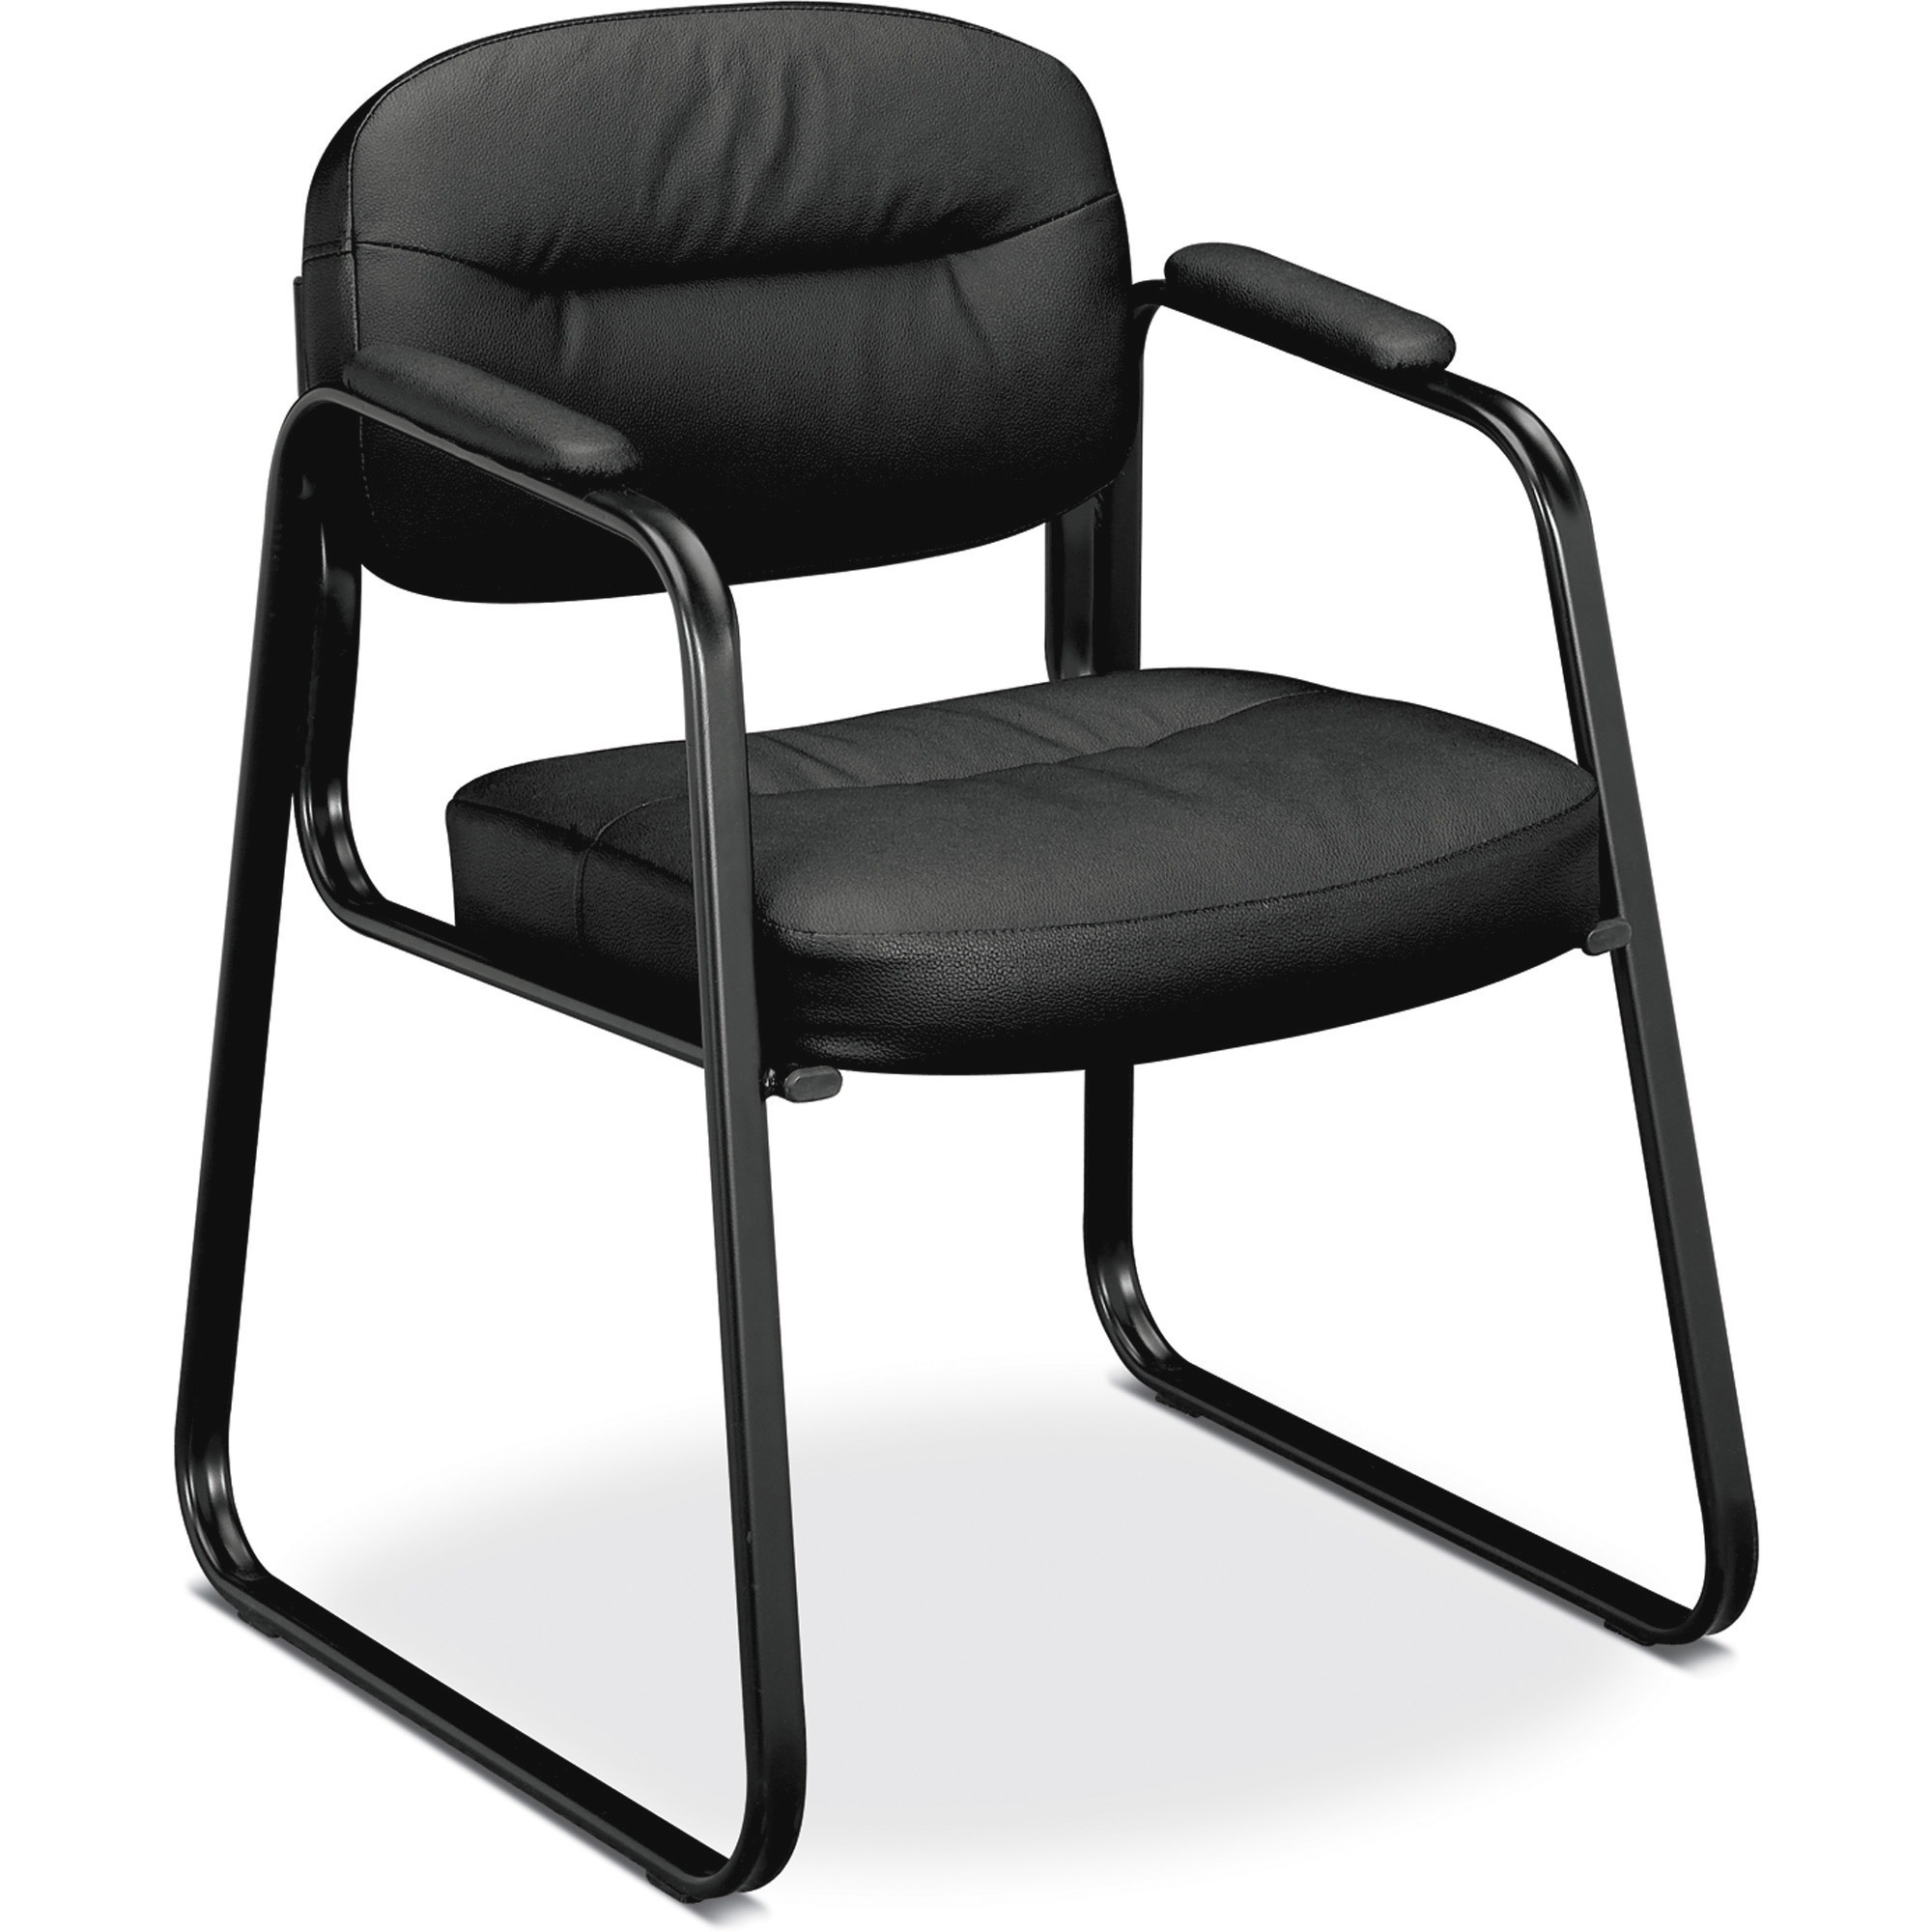 Product BSXVL653SB11 basyx by HON HVL653 Sled Base Guest Chair